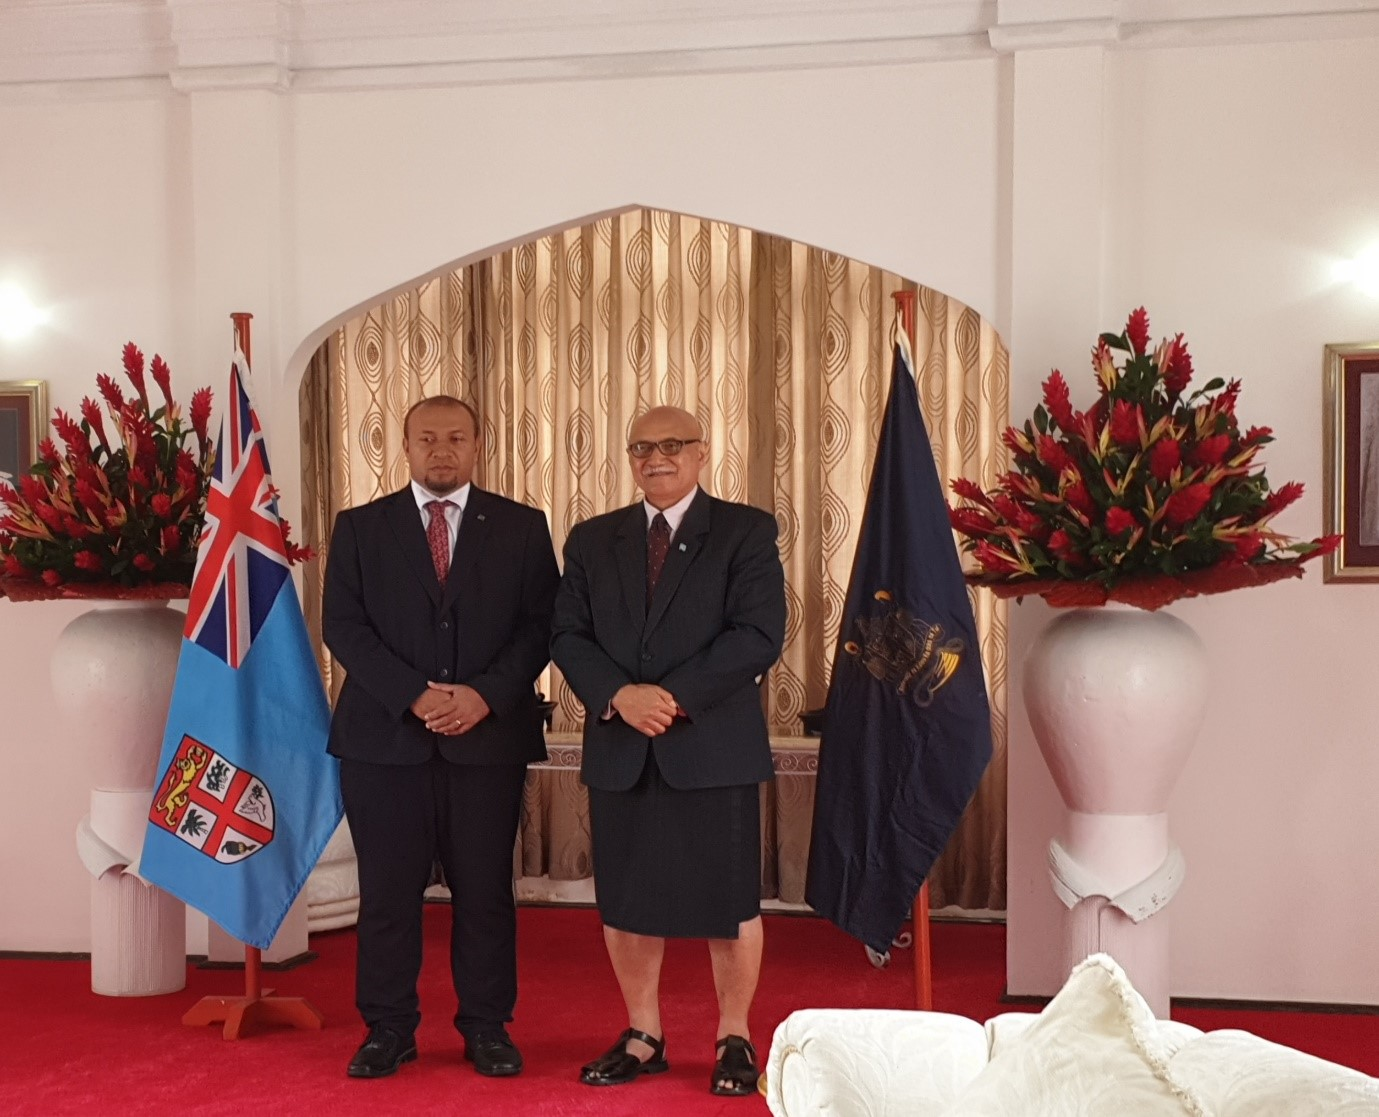 H.E. William Soaki and H.E Major-General (retired) Jioji Konrote, President of Fiji at the presentation of credentials ceremony in Suva